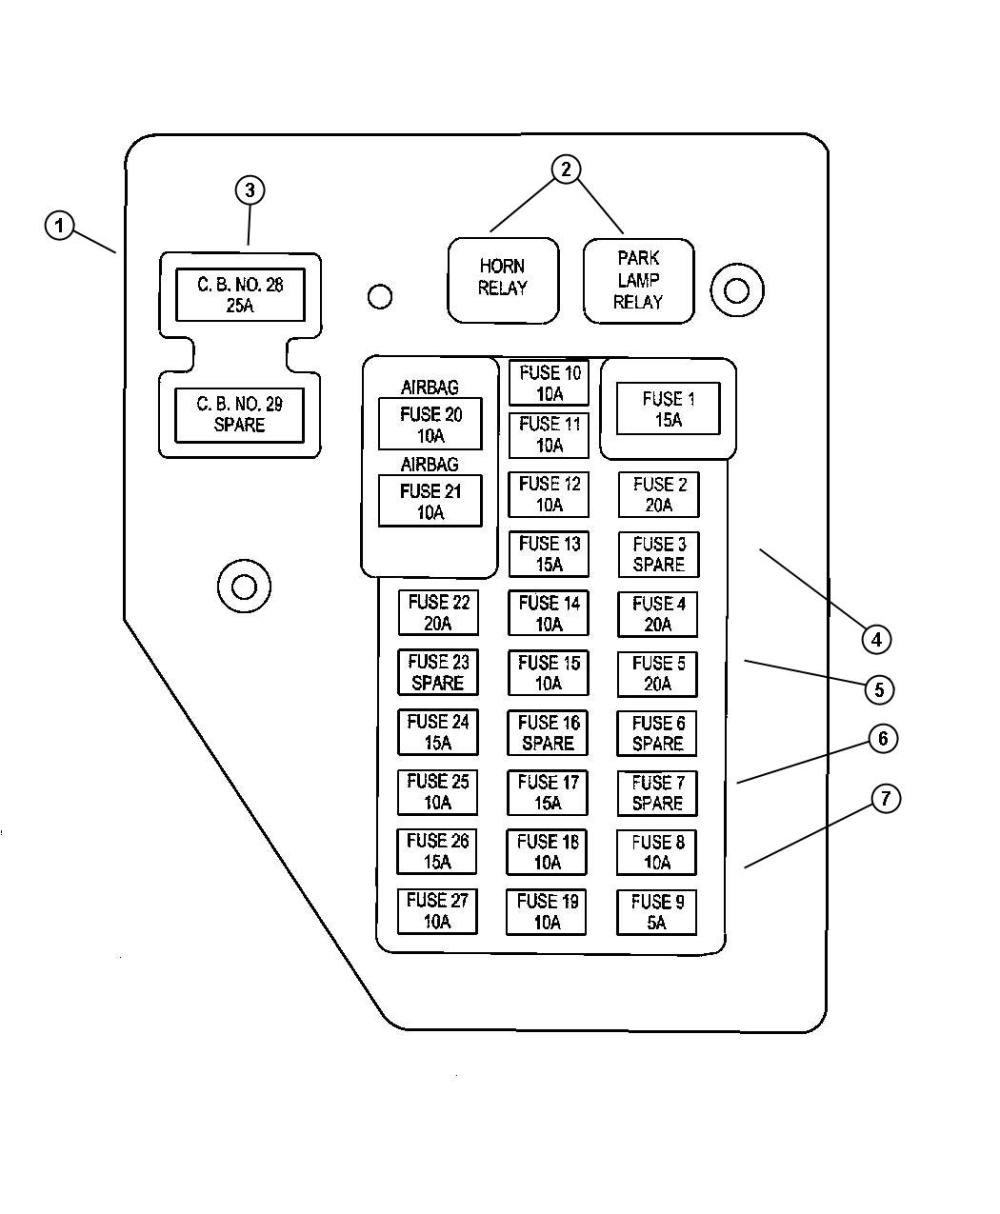 medium resolution of 1997 dodge ram fuse box diagram wiring diagram inside fuse box location on 1997 dodge ram2500